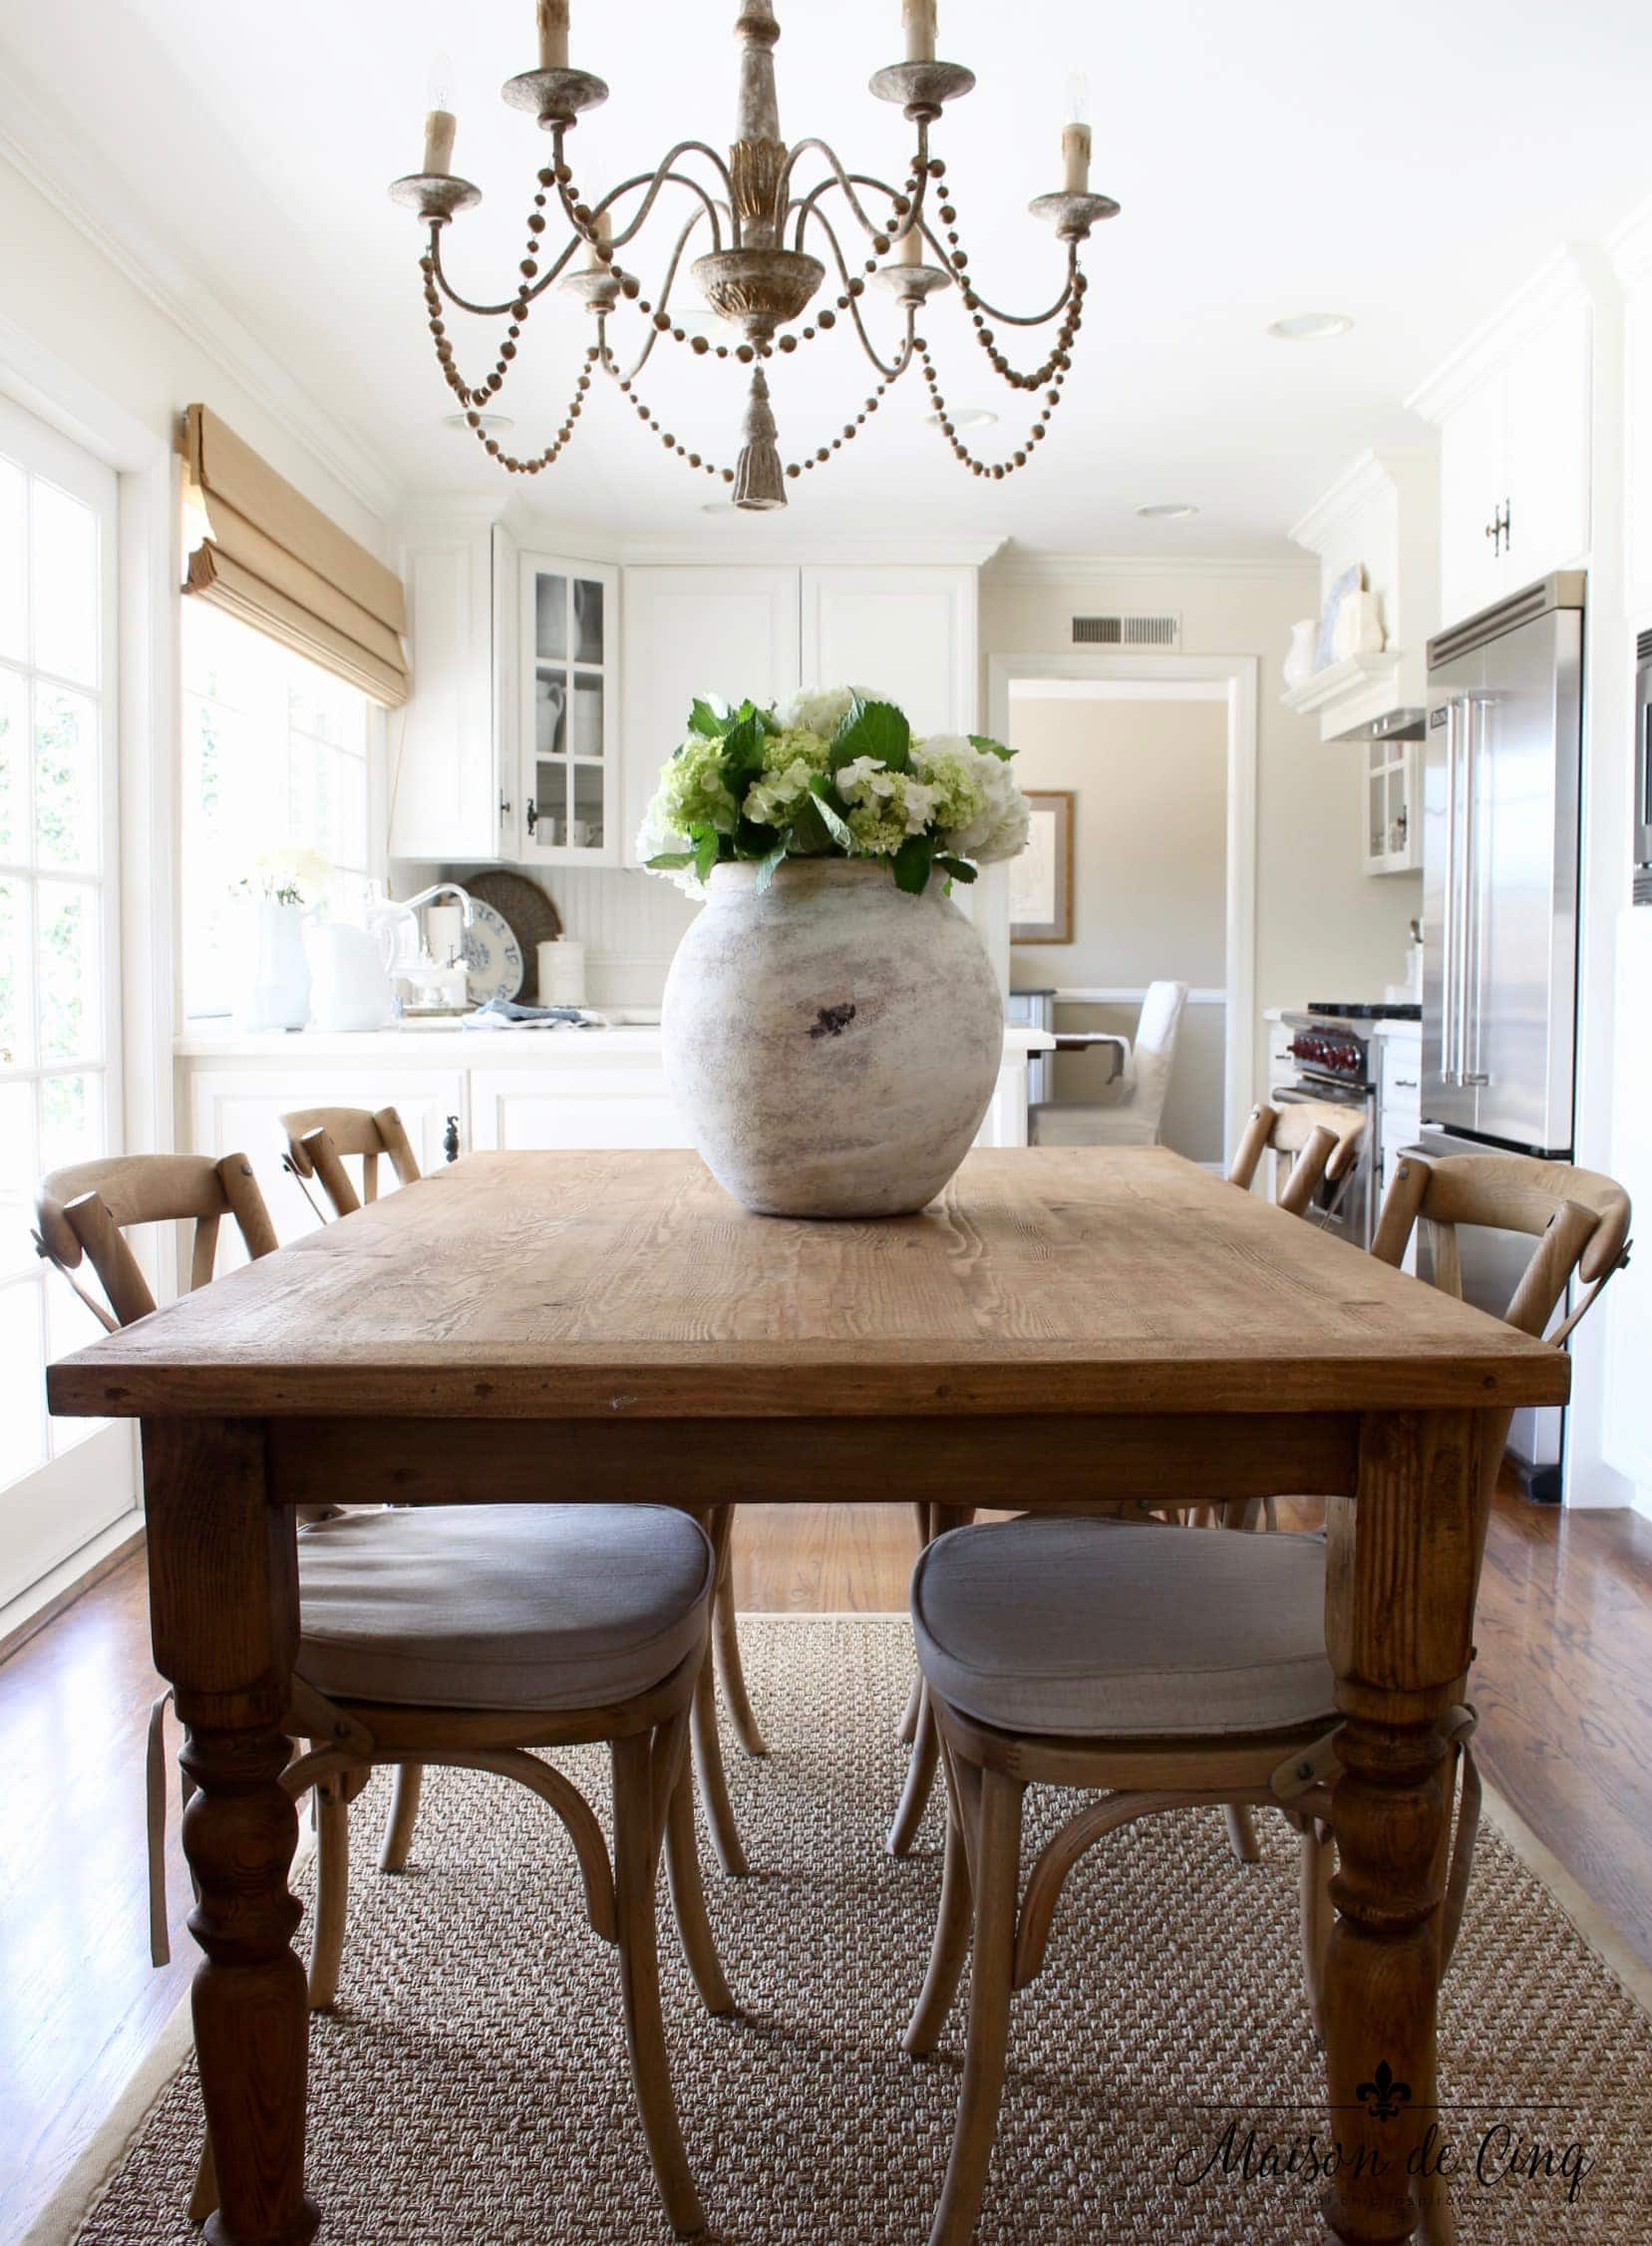 farmhouse table in the kitchen nook with  a large urn full of hydrangeas